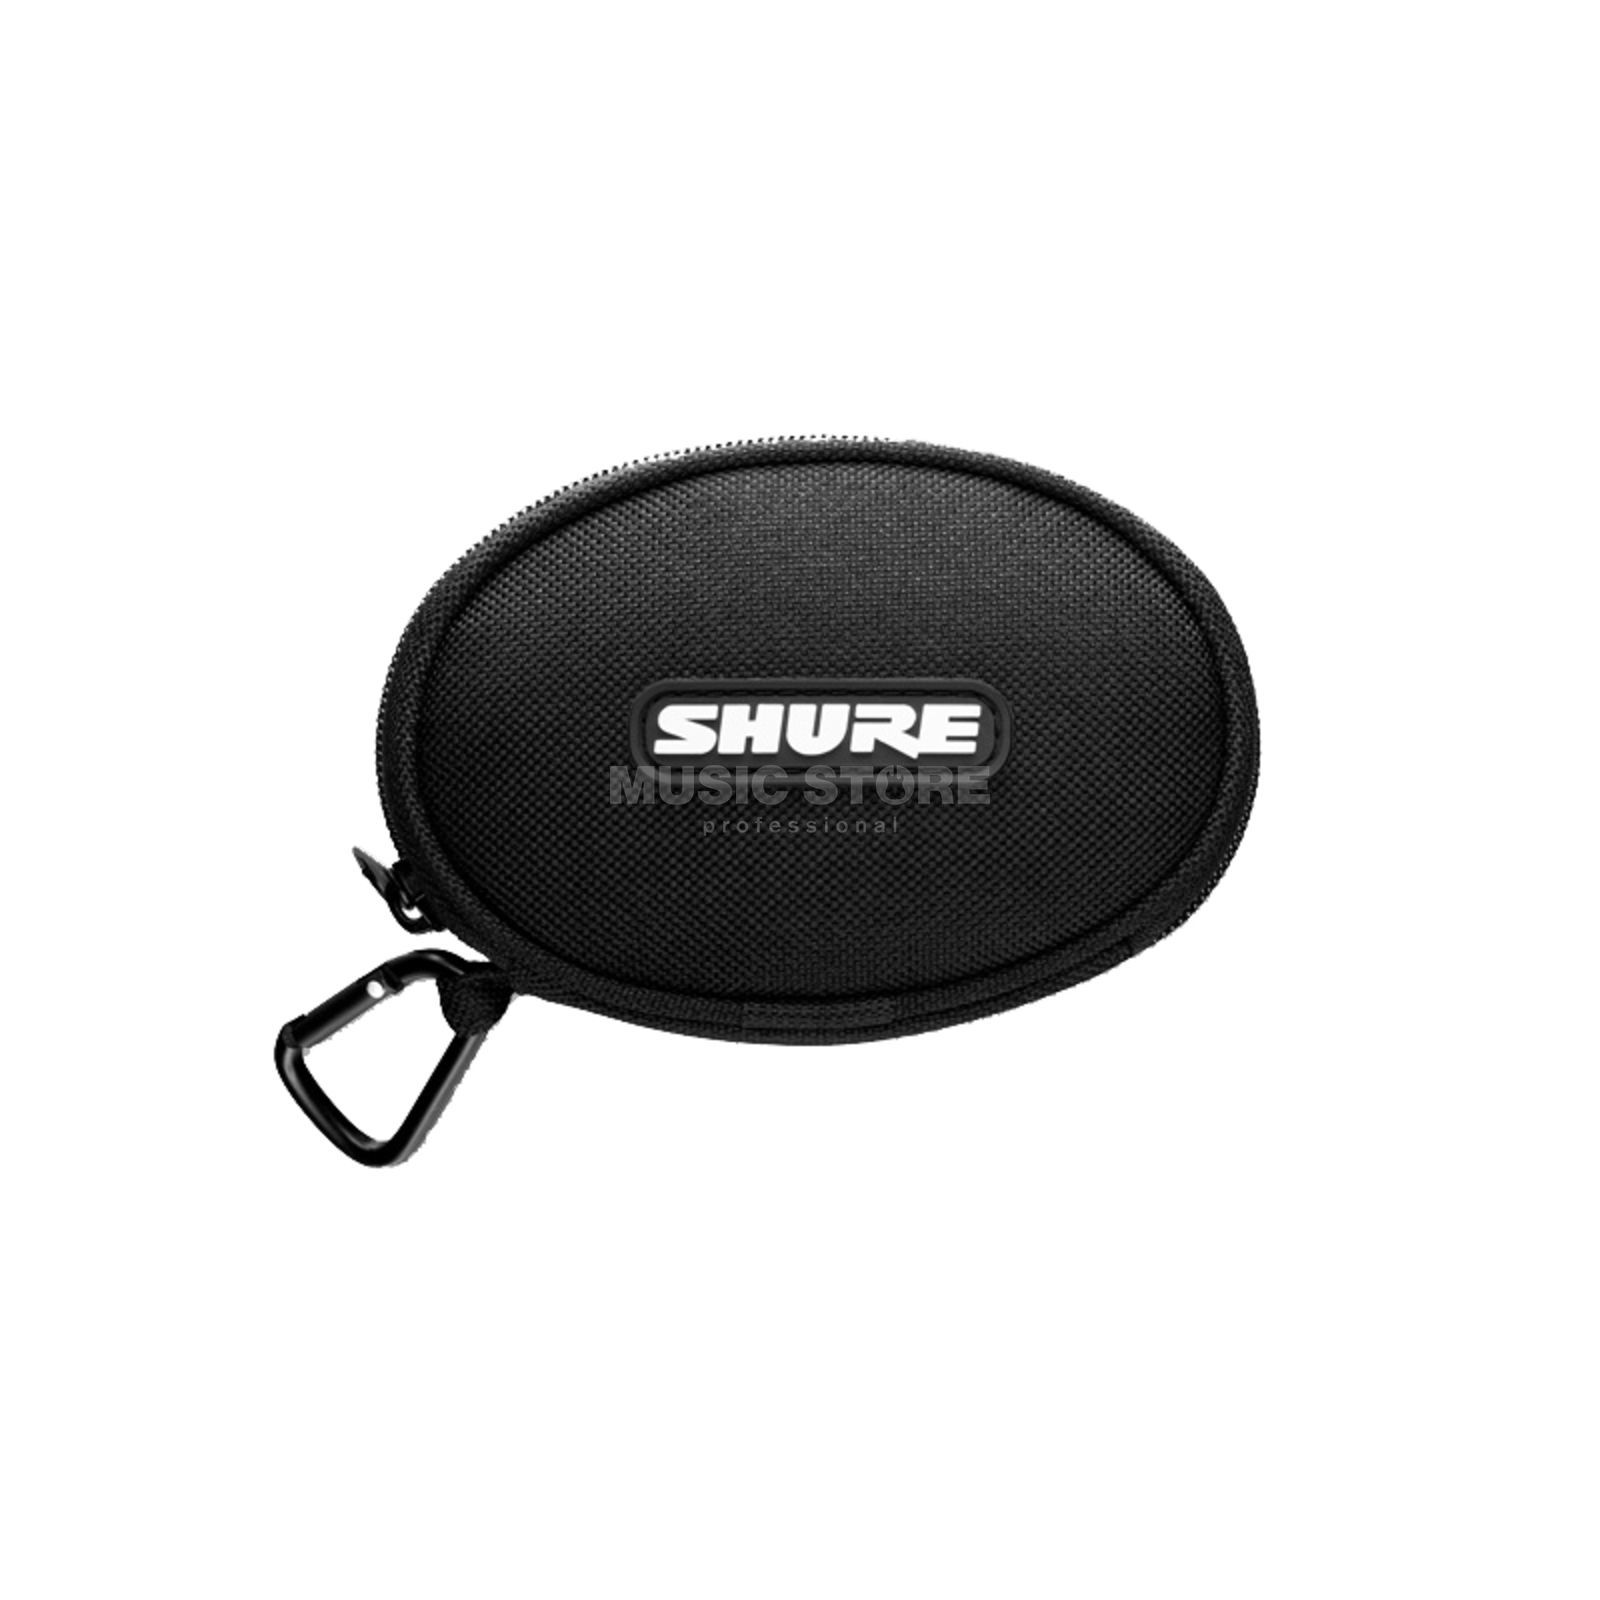 Shure EASCASE Case for Ear Phones SCL 2, SCL 3 Produktbillede